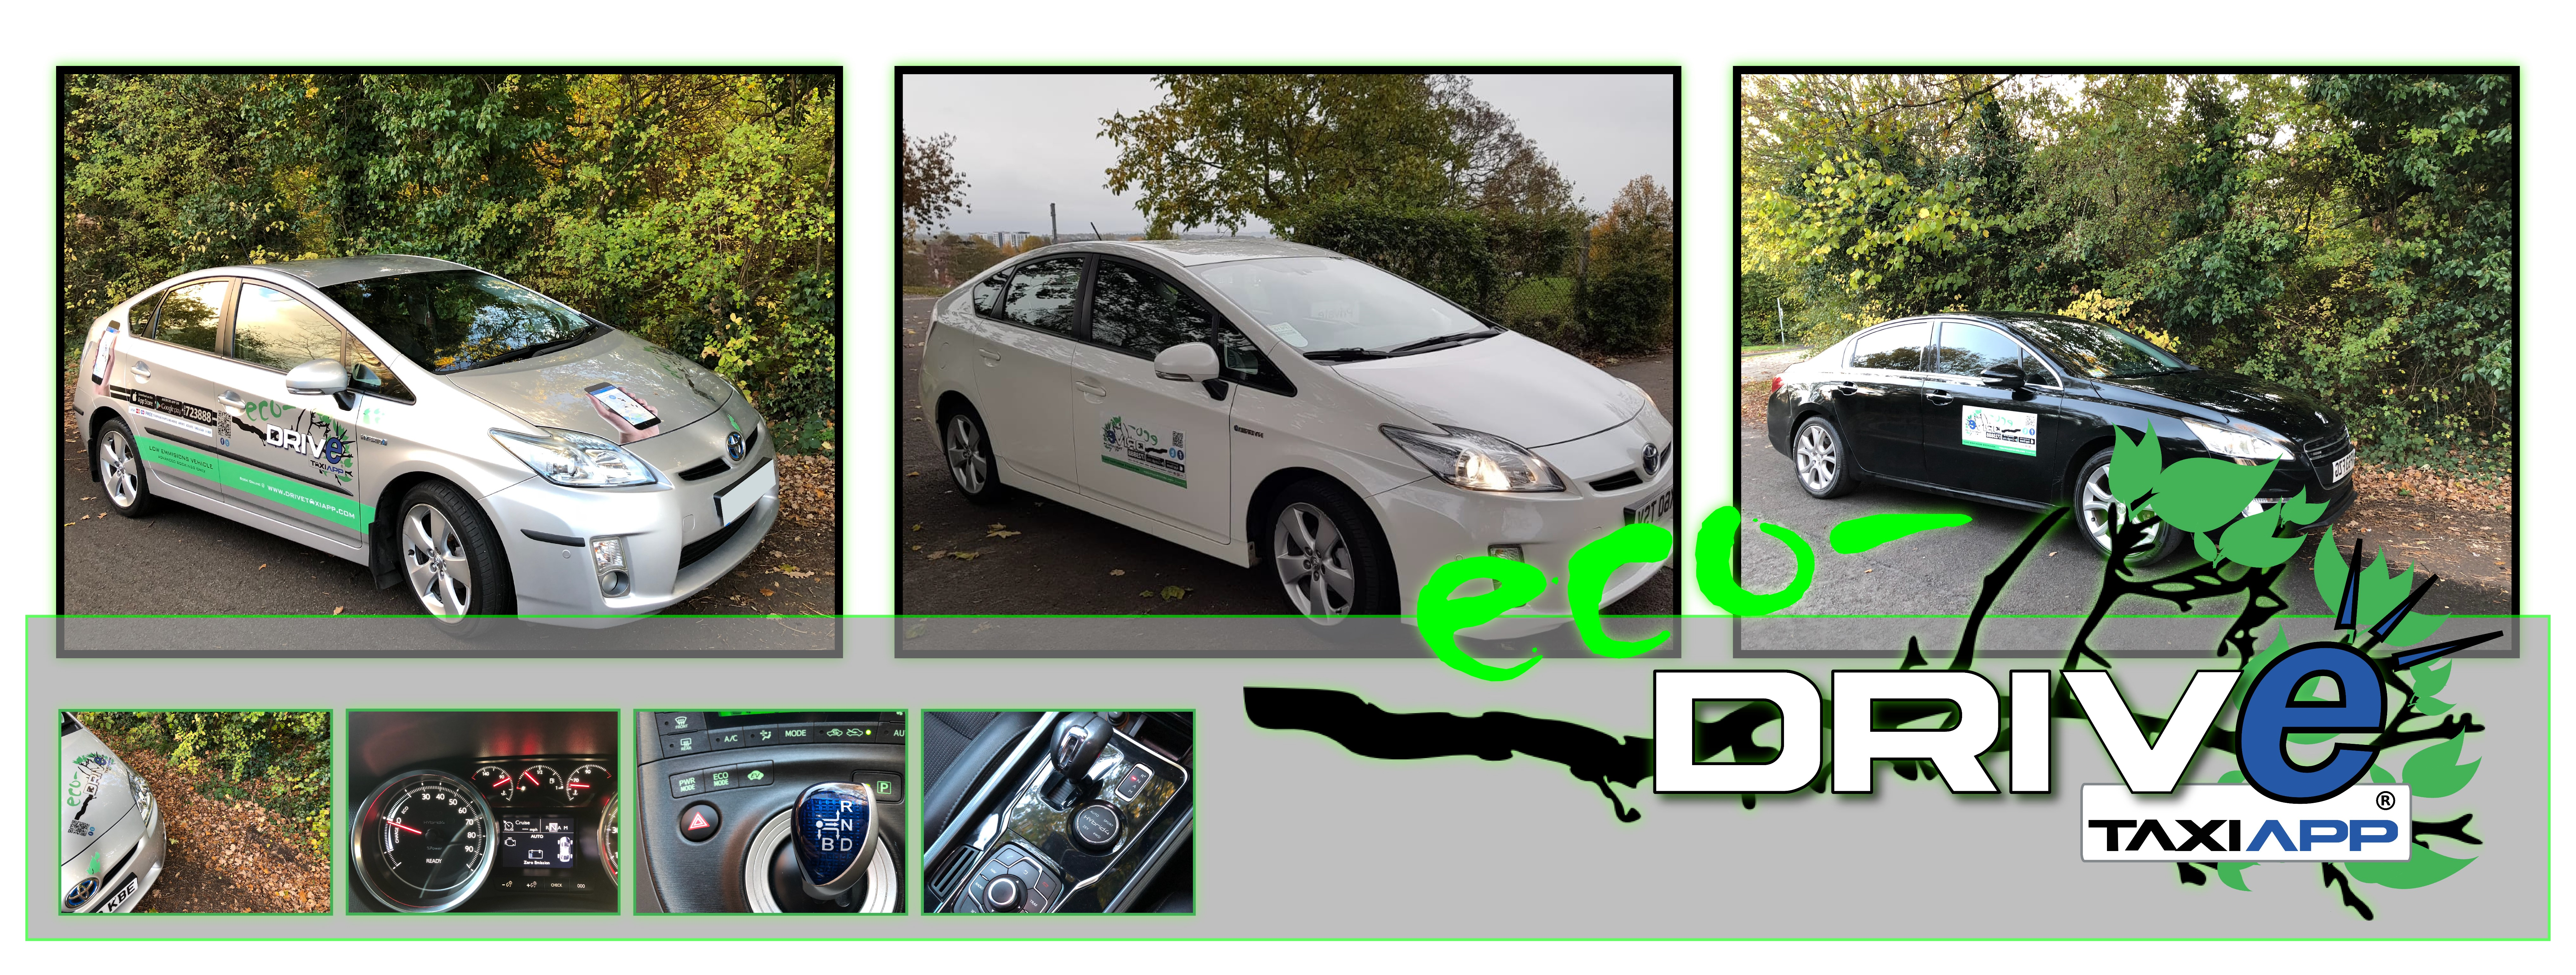 Worcester taxis Eco taxis Hybrid Taxi